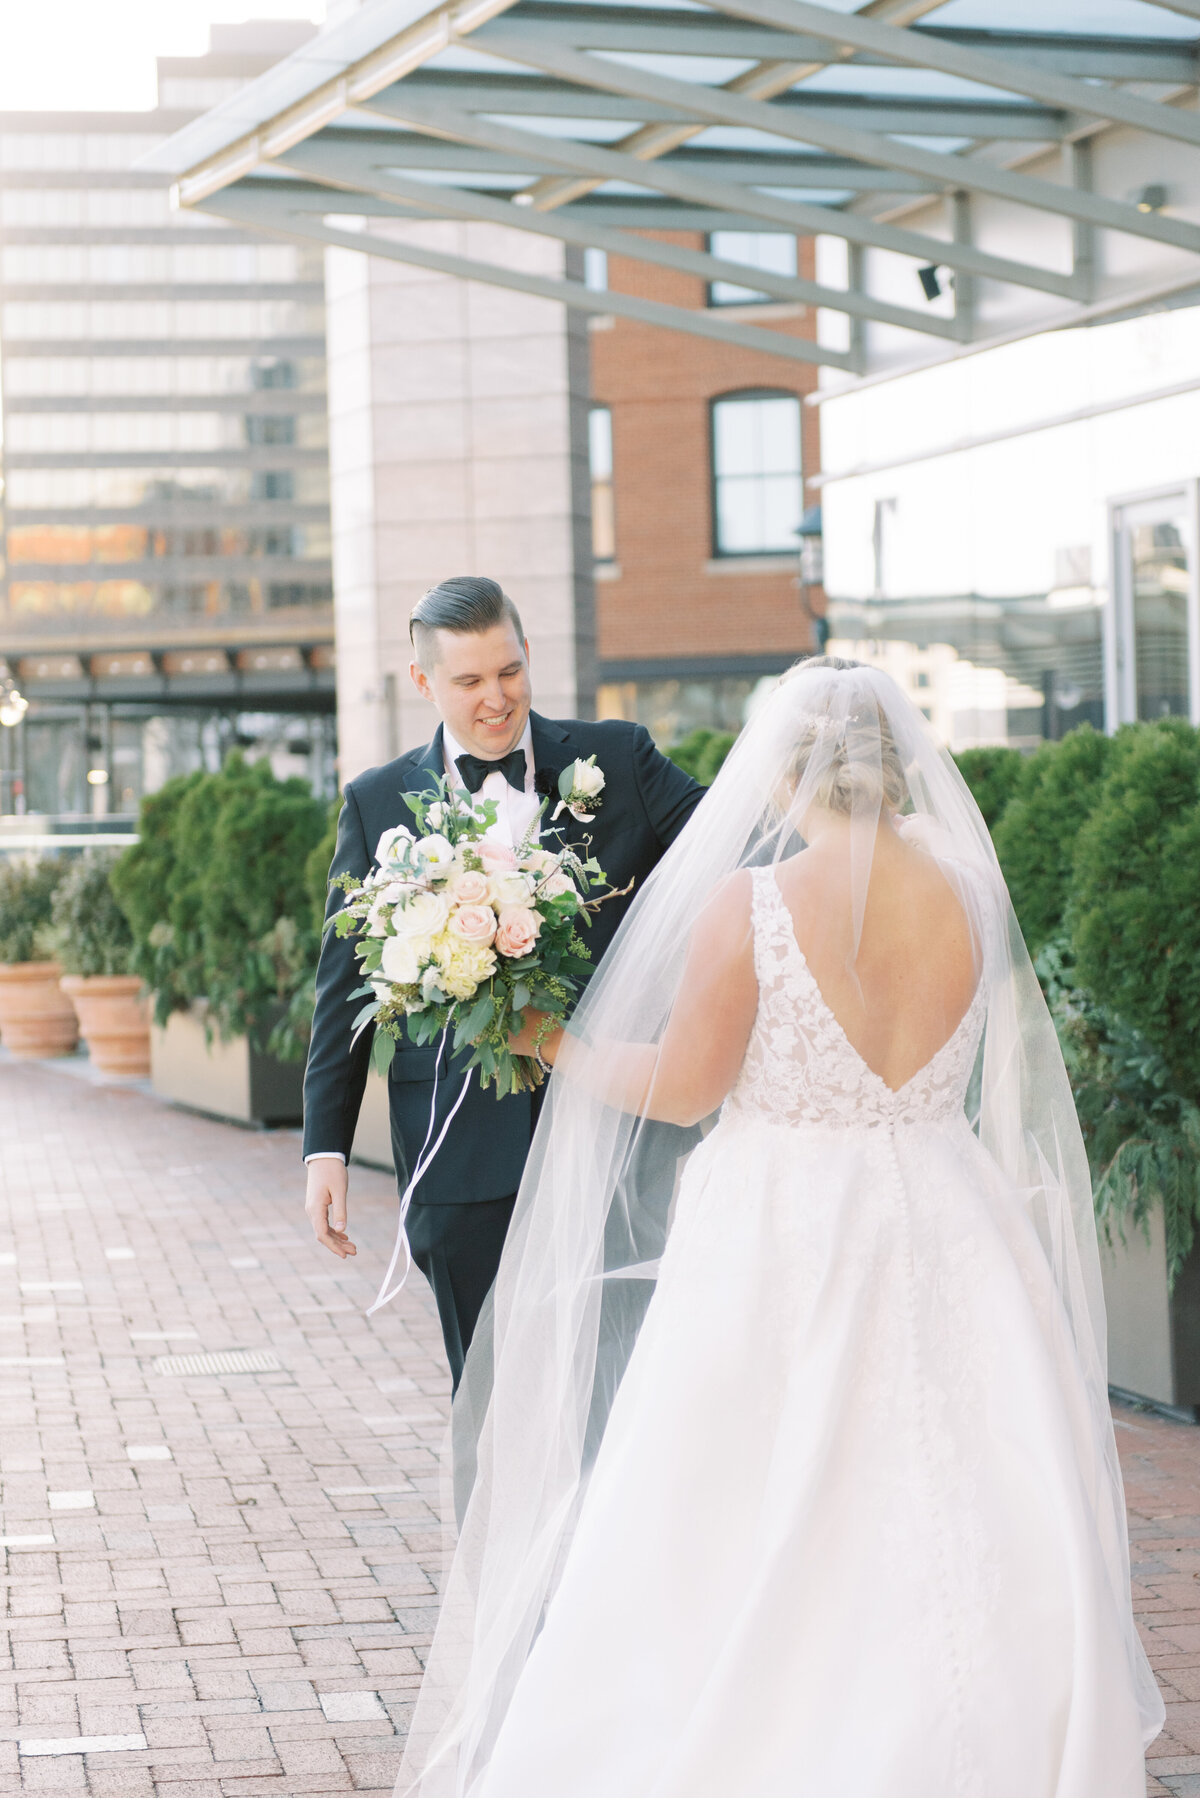 MarcelaPloskerPhotography|StateRoomWedding|Alissa&Chris-366